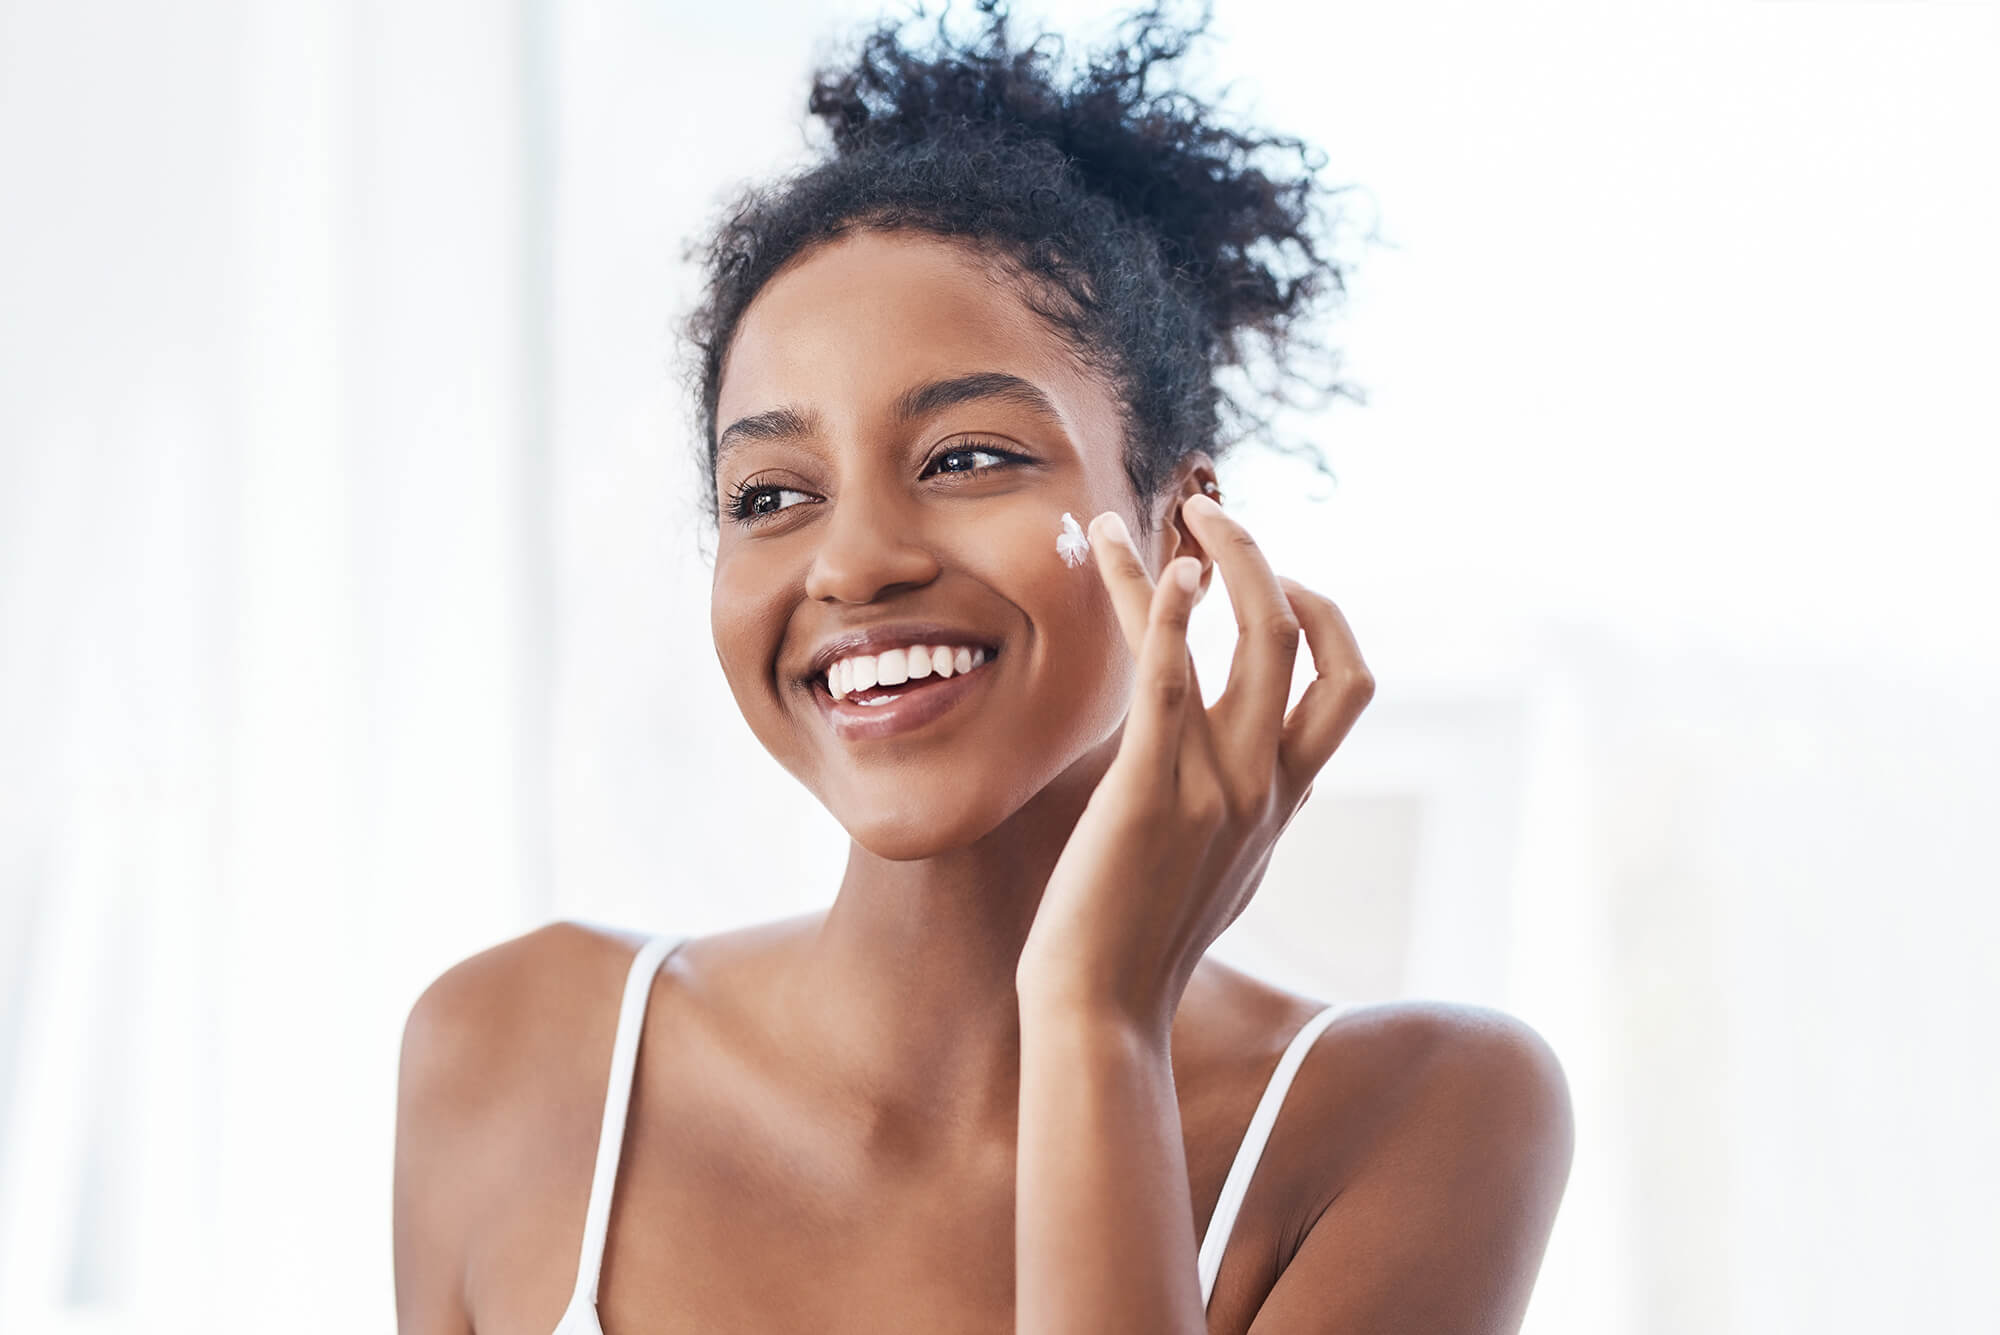 use quality cosmetics suitable for your skin type